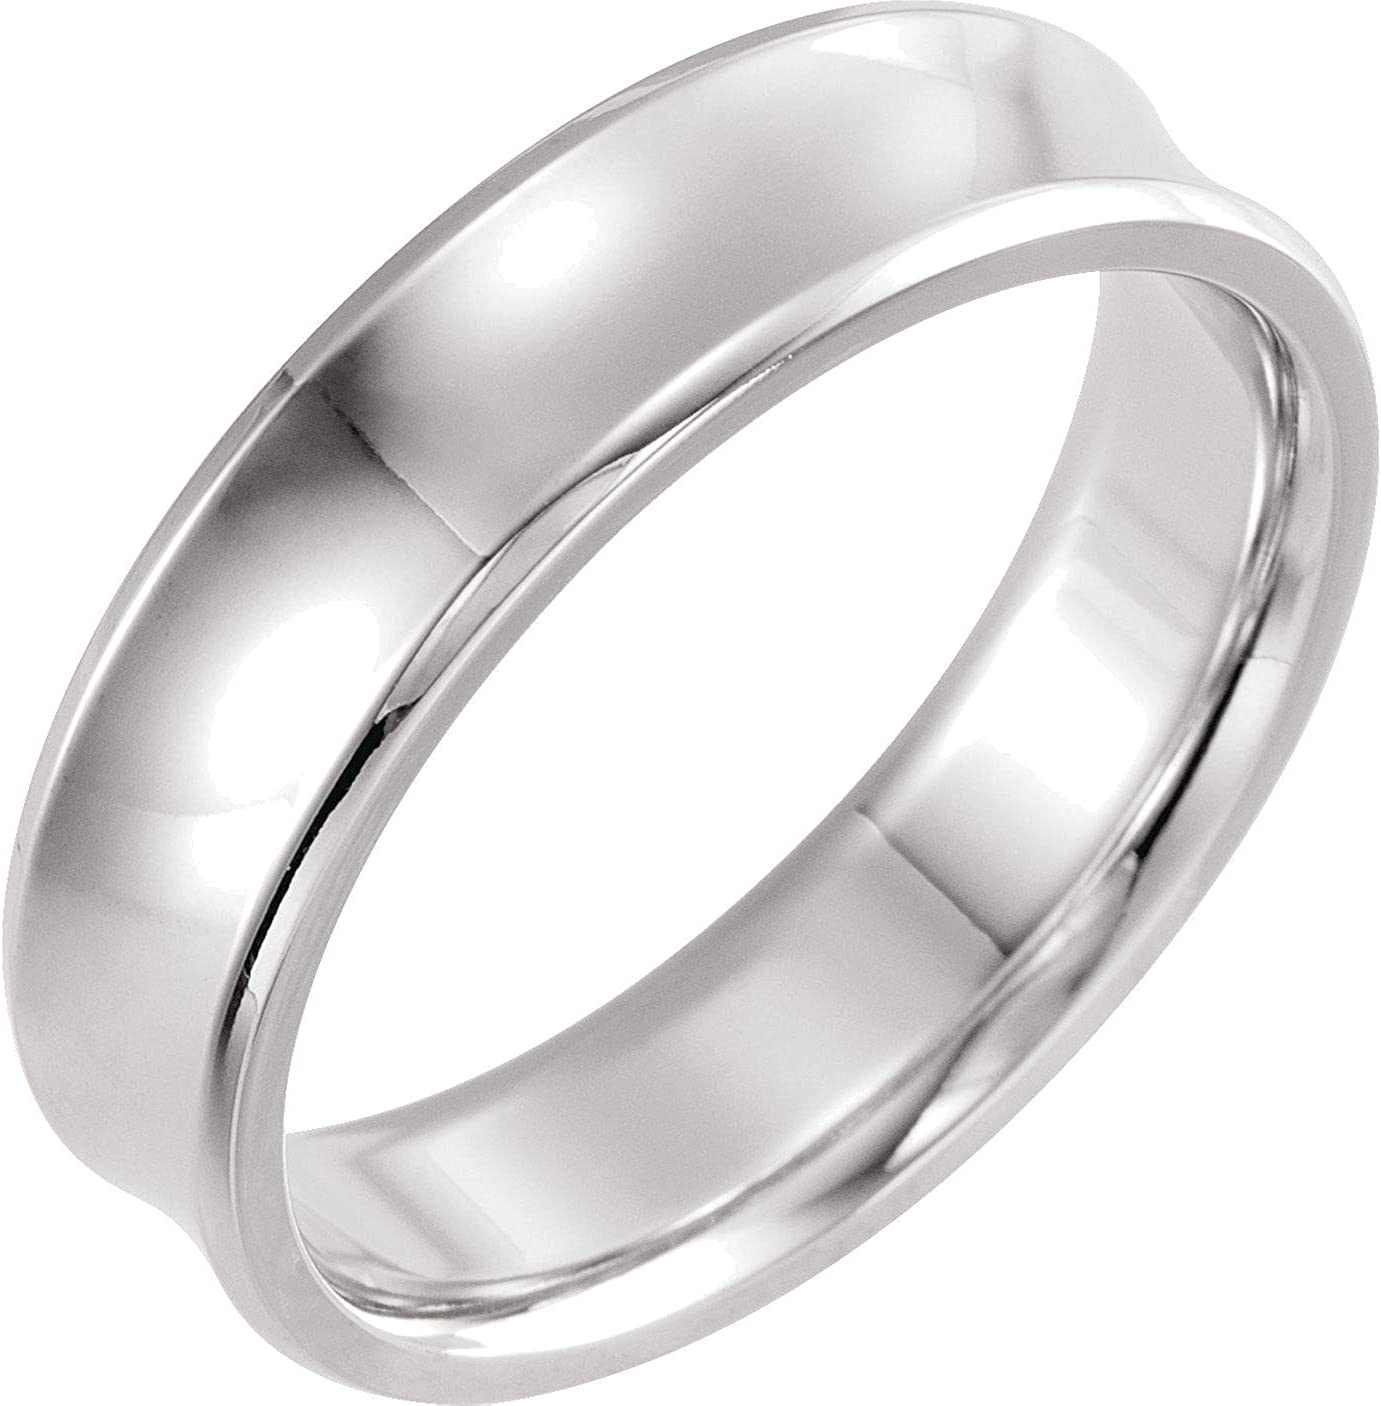 Bonyak Jewelry New mail Outstanding order Solid Sterling Silver Beveled-Edge Ba 6mm Concave